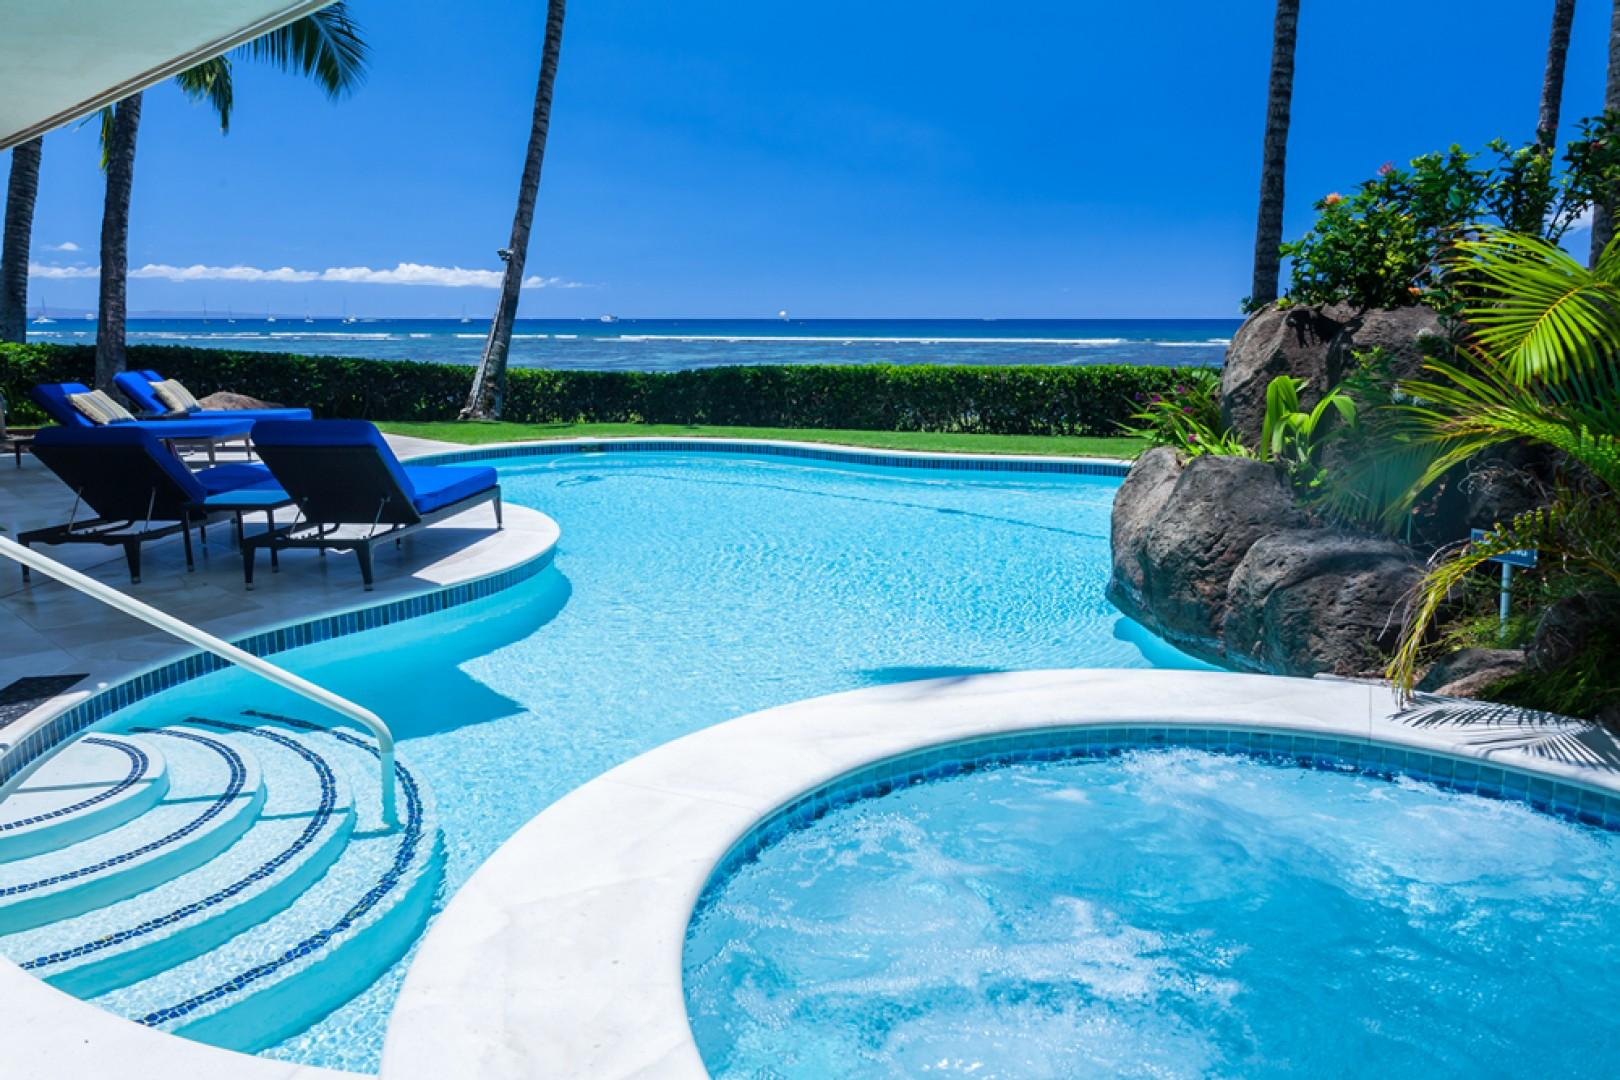 Opal Seas At Baby Beach - Private Beachfront Heated Pool with Grass Lawn, Outdoor Shower, Hammock, Jacuzzi Hot Tub Spa, BBQ Grill, Outdoor Dining, and Six Chaise Lounge Chairs